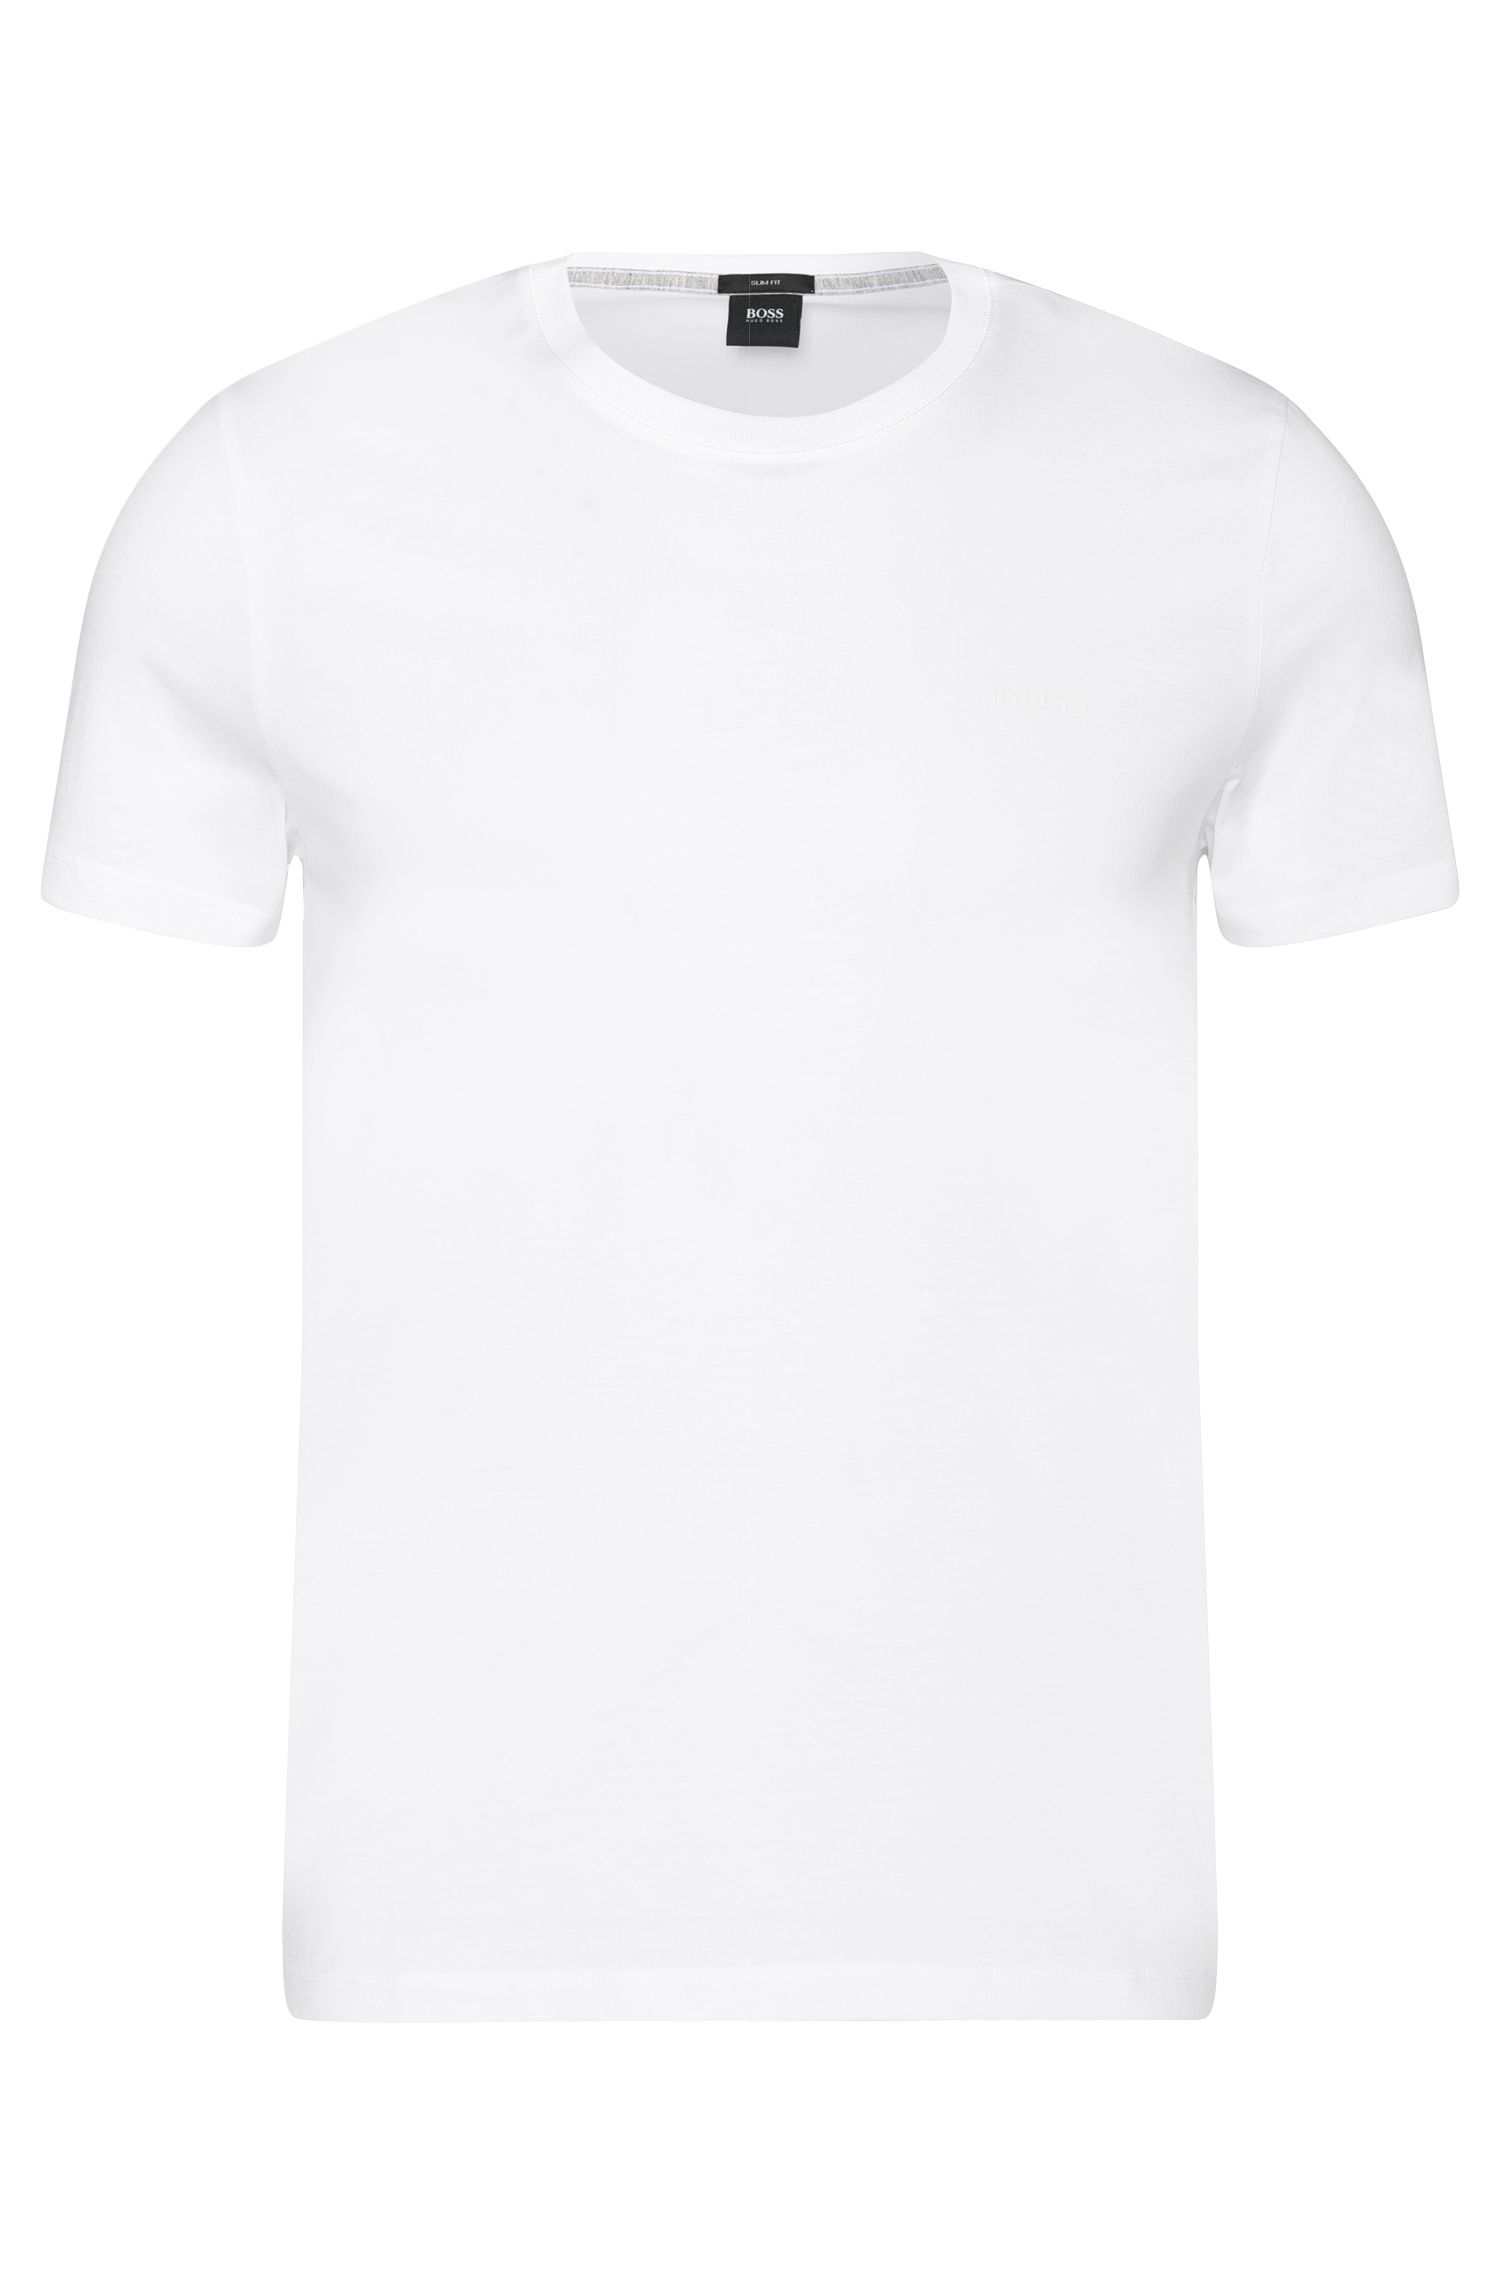 T-shirt Slim Fit en coton : « Tessler 33 »